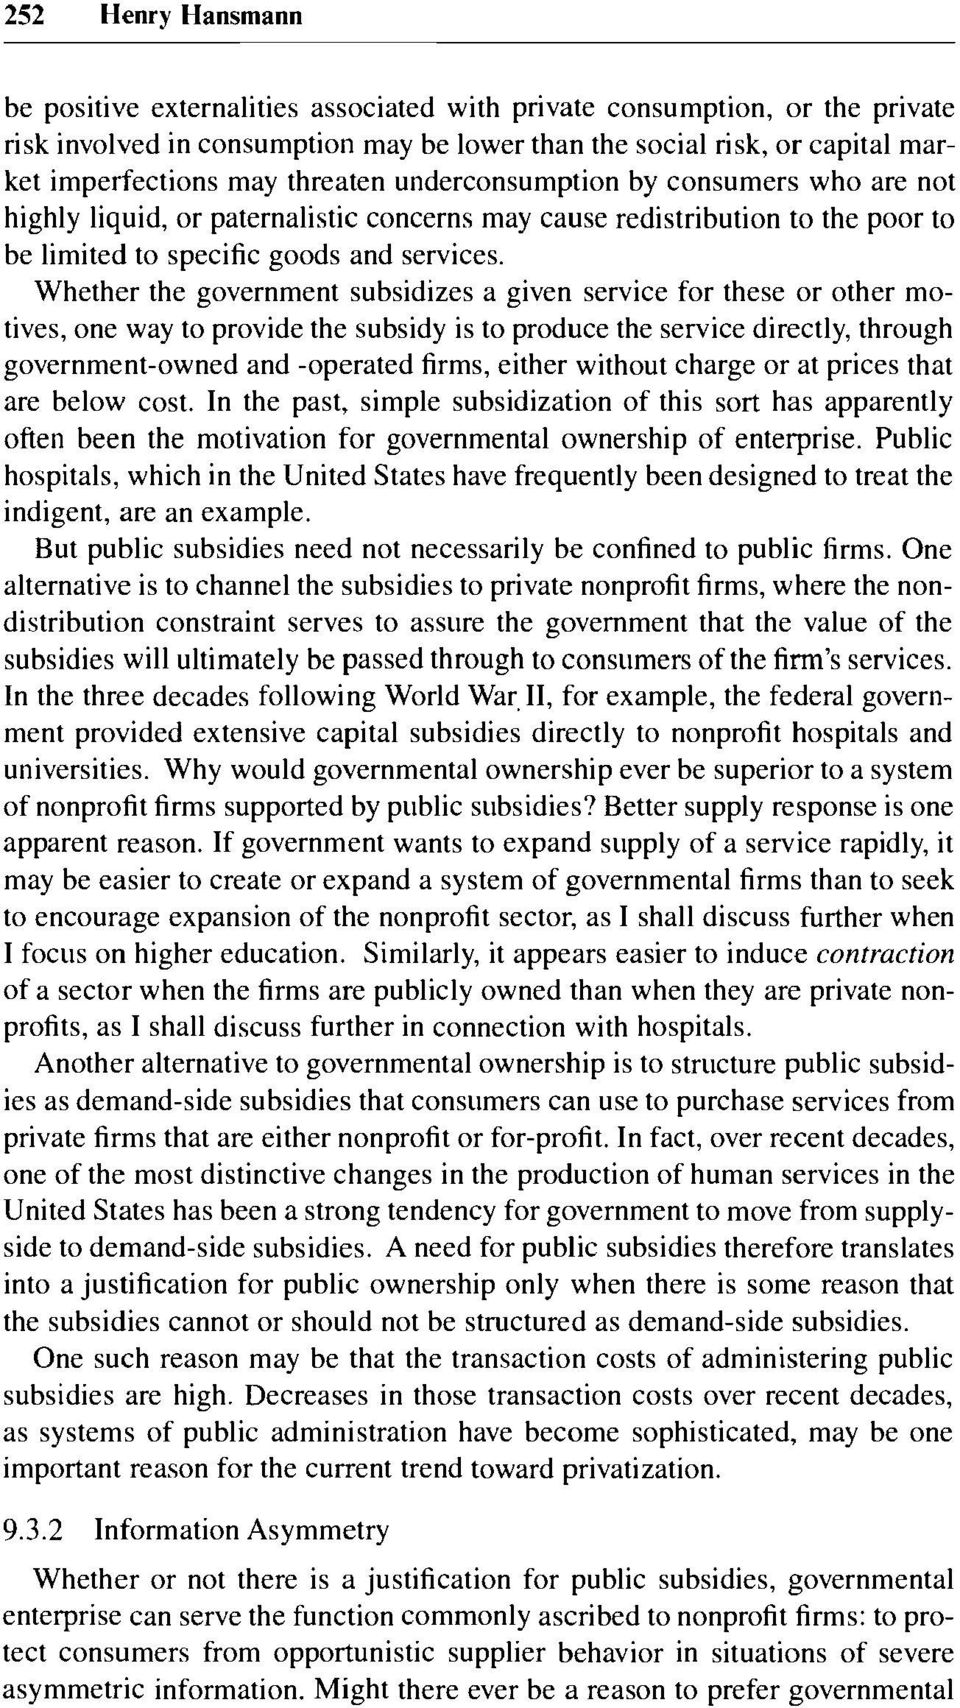 Whether the government subsidizes a given service for these or other motives, one way to provide the subsidy is to produce the service directly, through government-owned and -operated firms, either